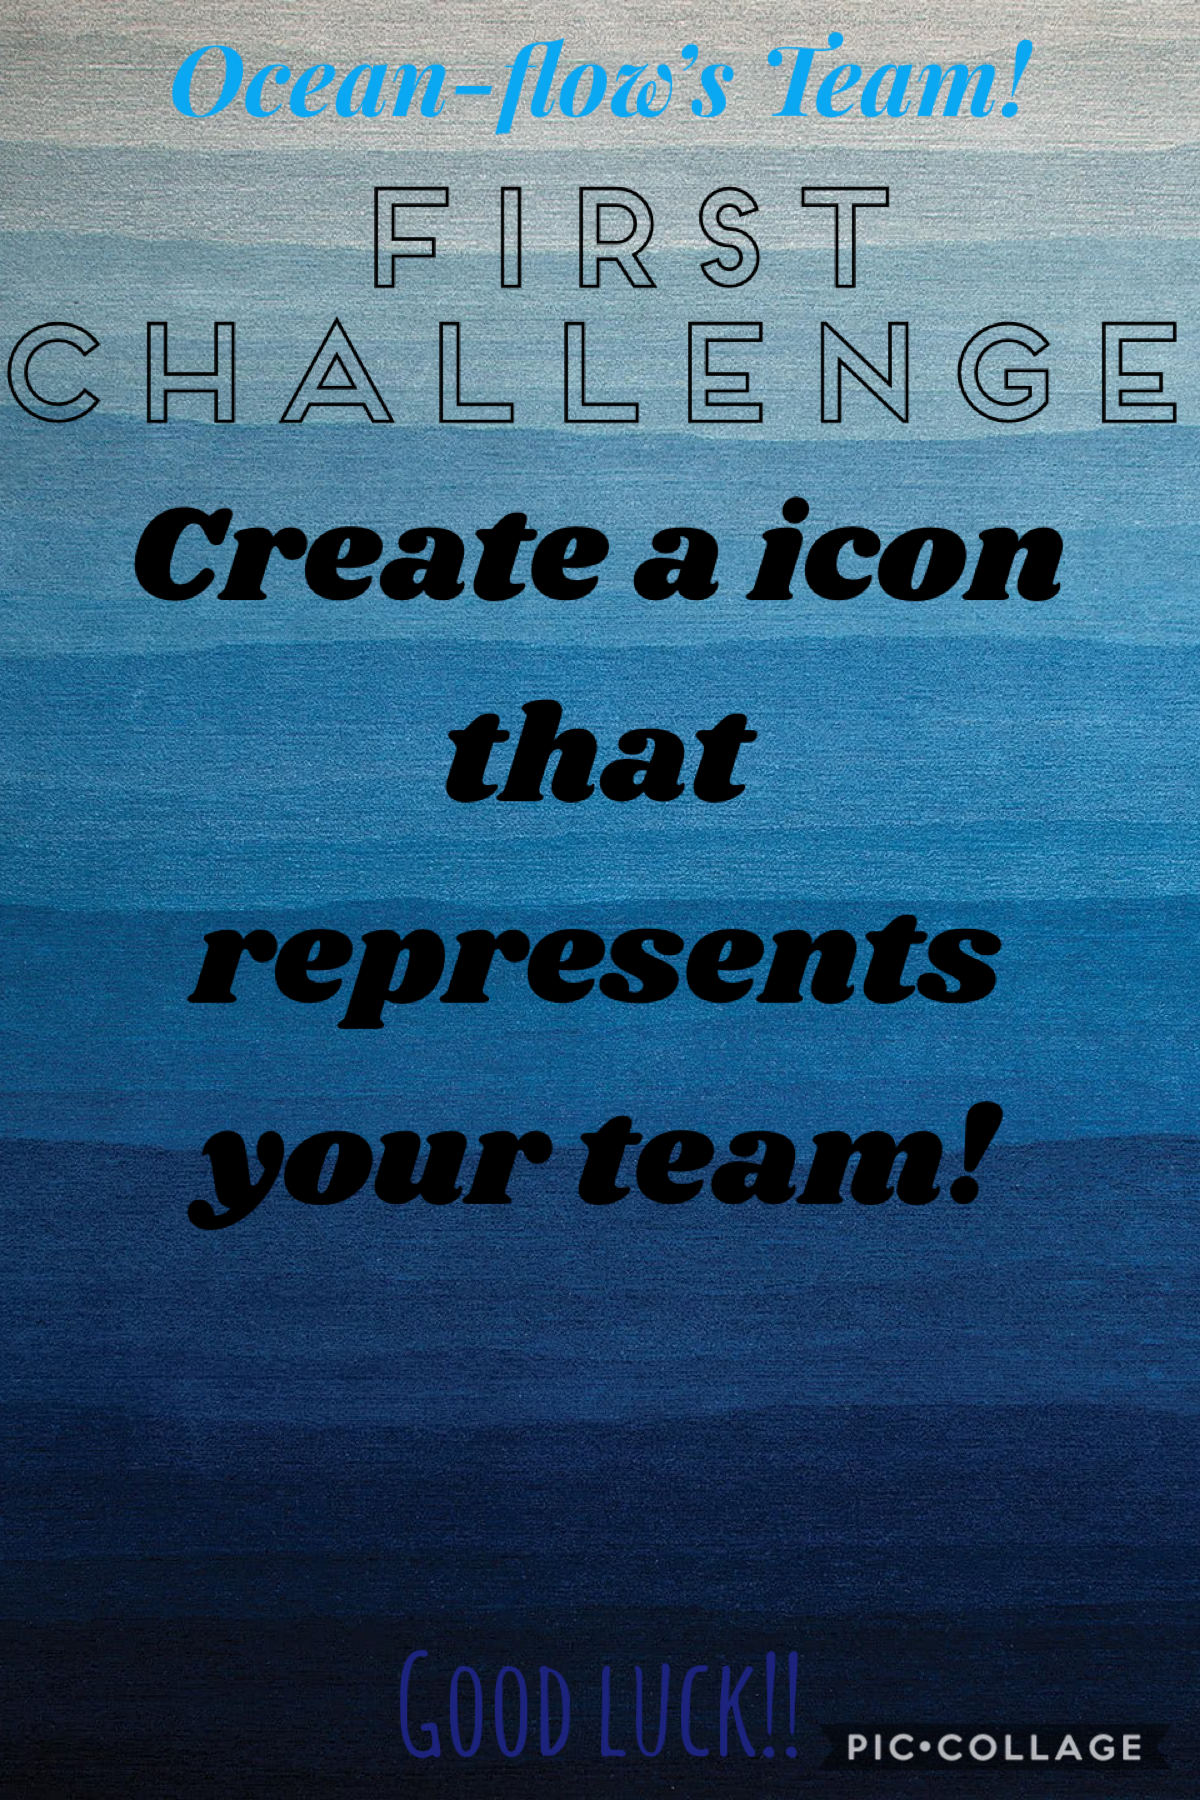 Good luck! (Remix it so I can see what you did for the challenge!)